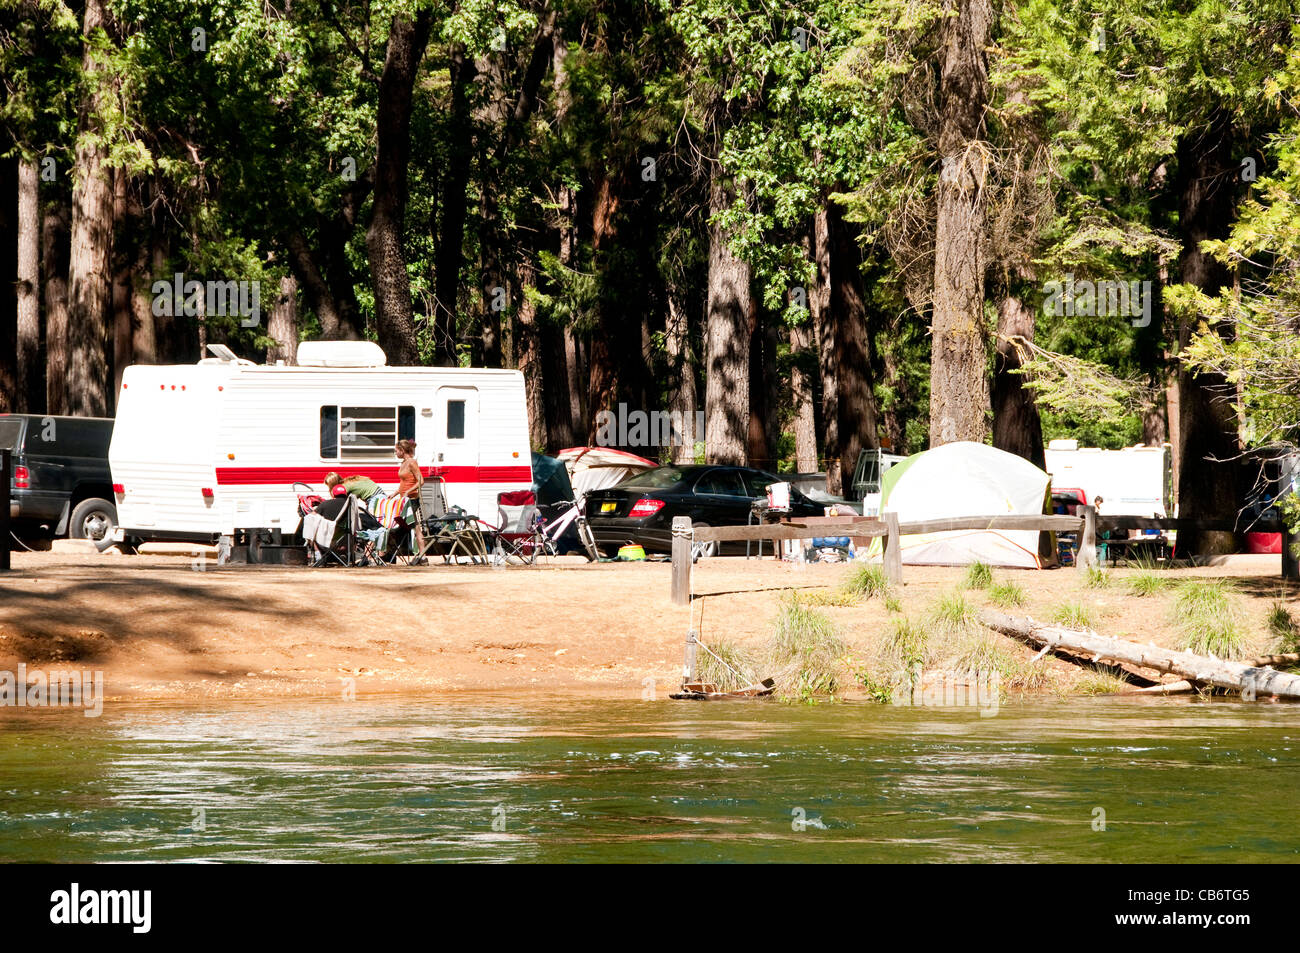 Campsite North Pines Campground Merced River Yosemite National Park California - Stock Image